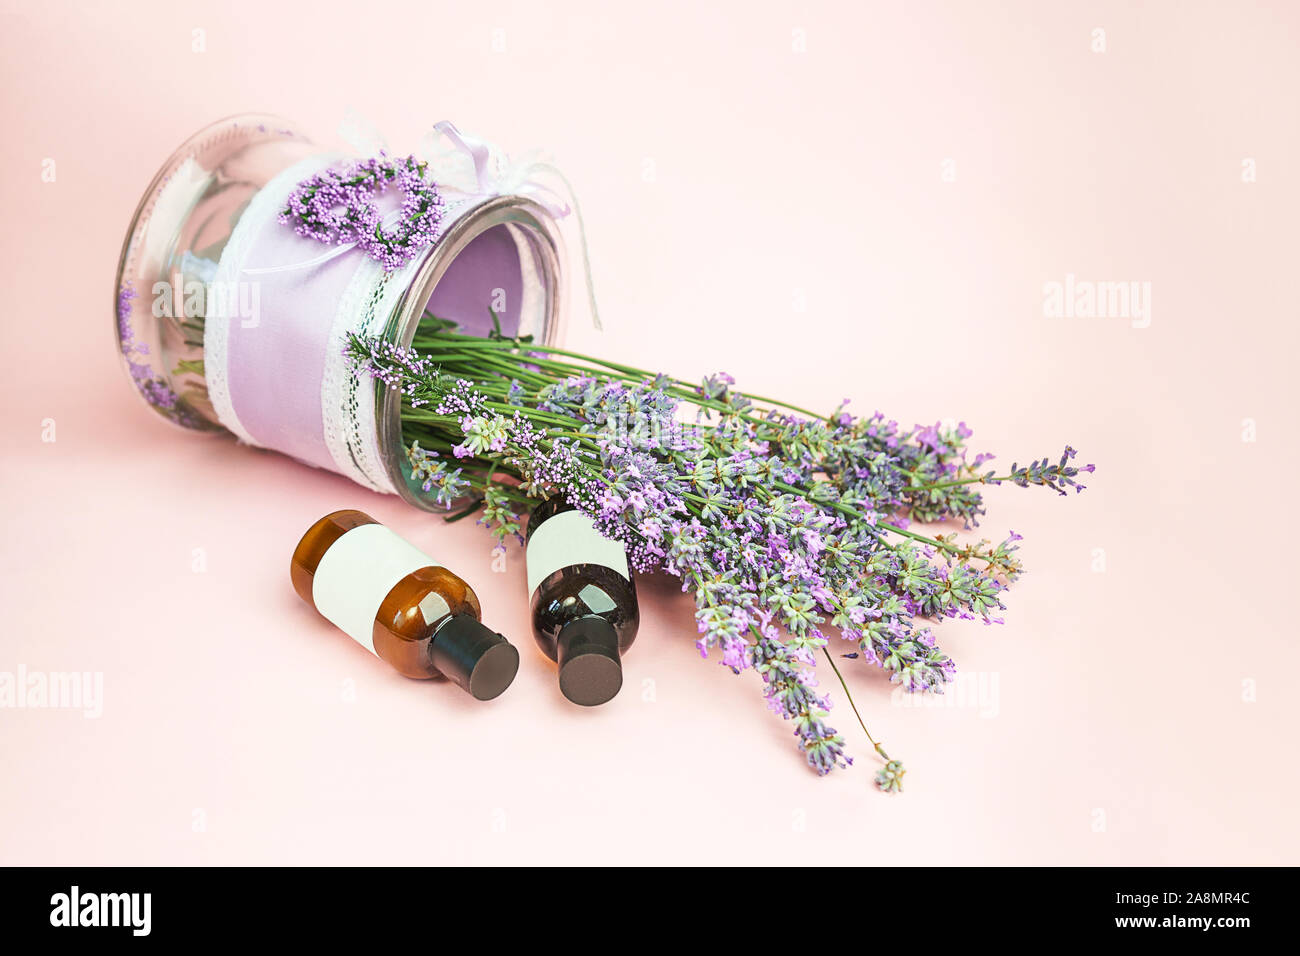 Natural cosmetics. Fresh lavender flowers and bottles essential oil or serum on pastel pink background. Alternative home medicine. Close-up, vintage style. Stock Photo